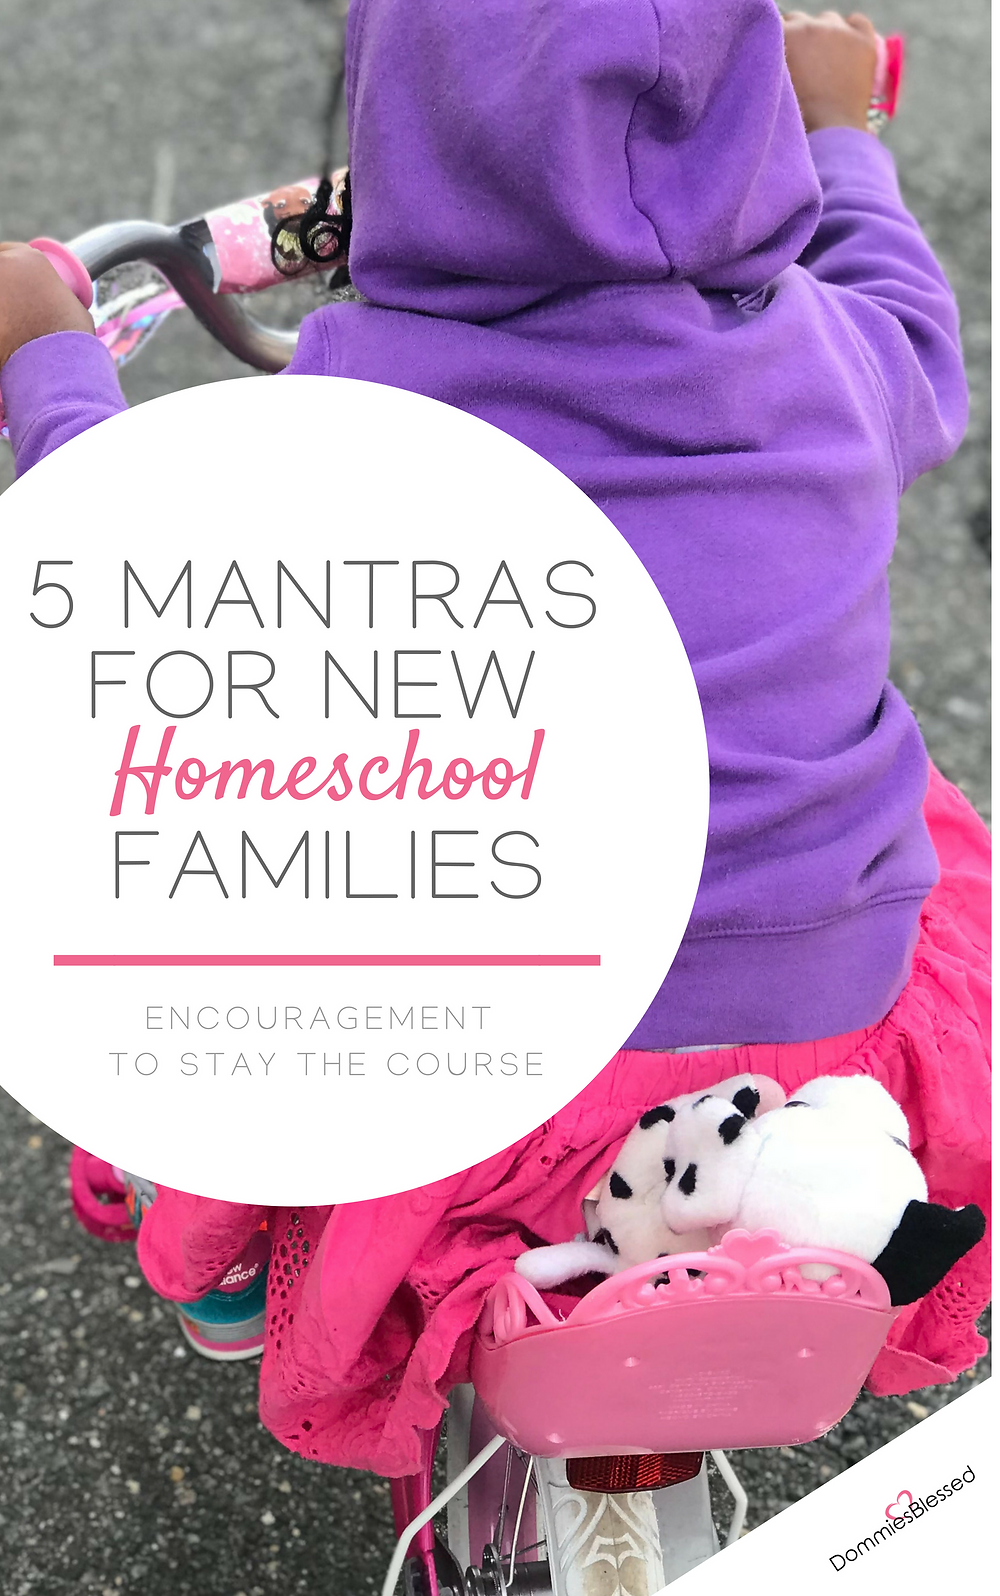 5 Mantras For New Homeschool Families